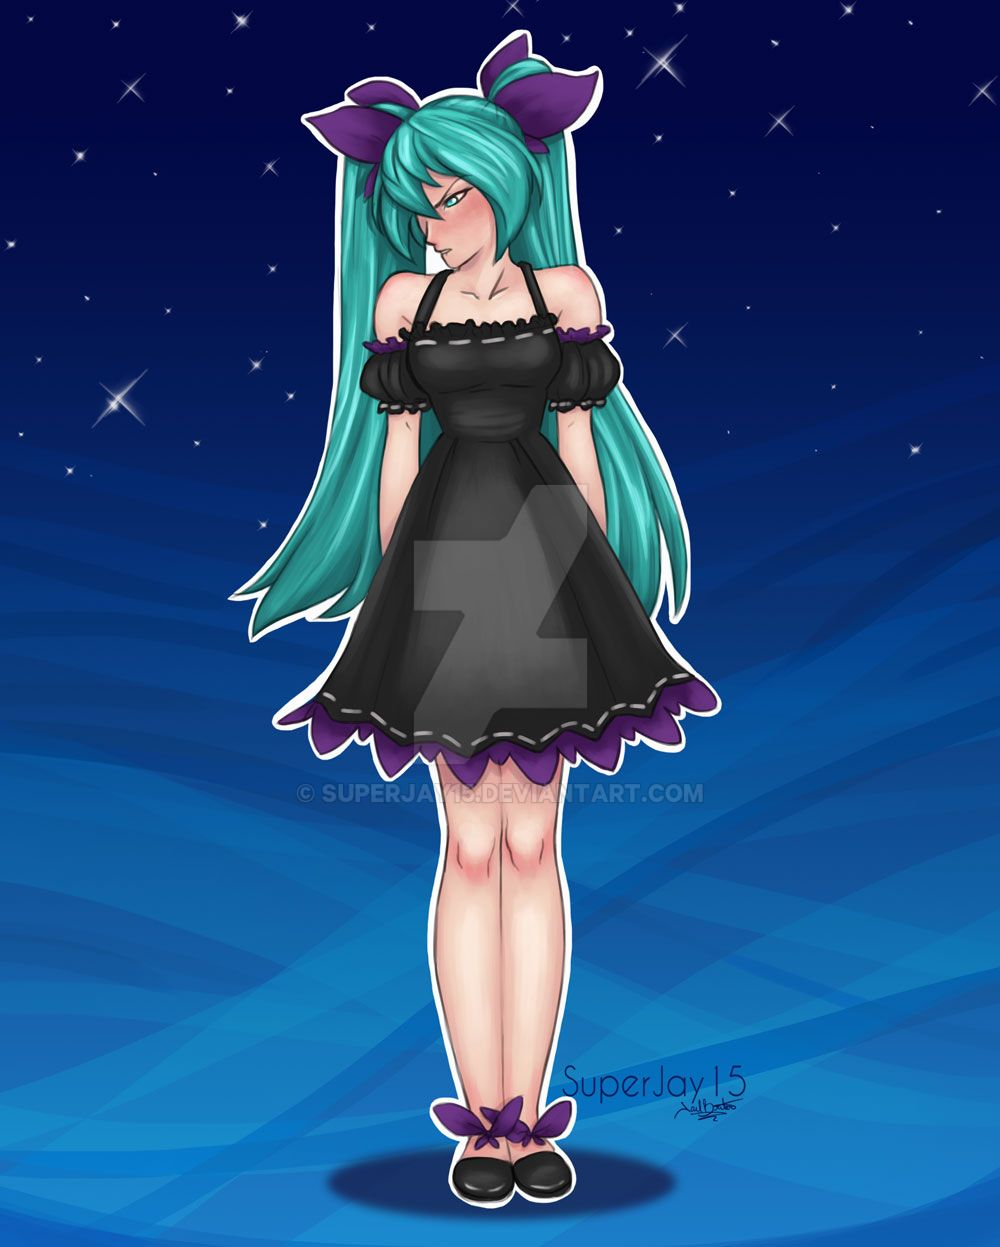 Angry Miku By Superjay15 On DeviantArt